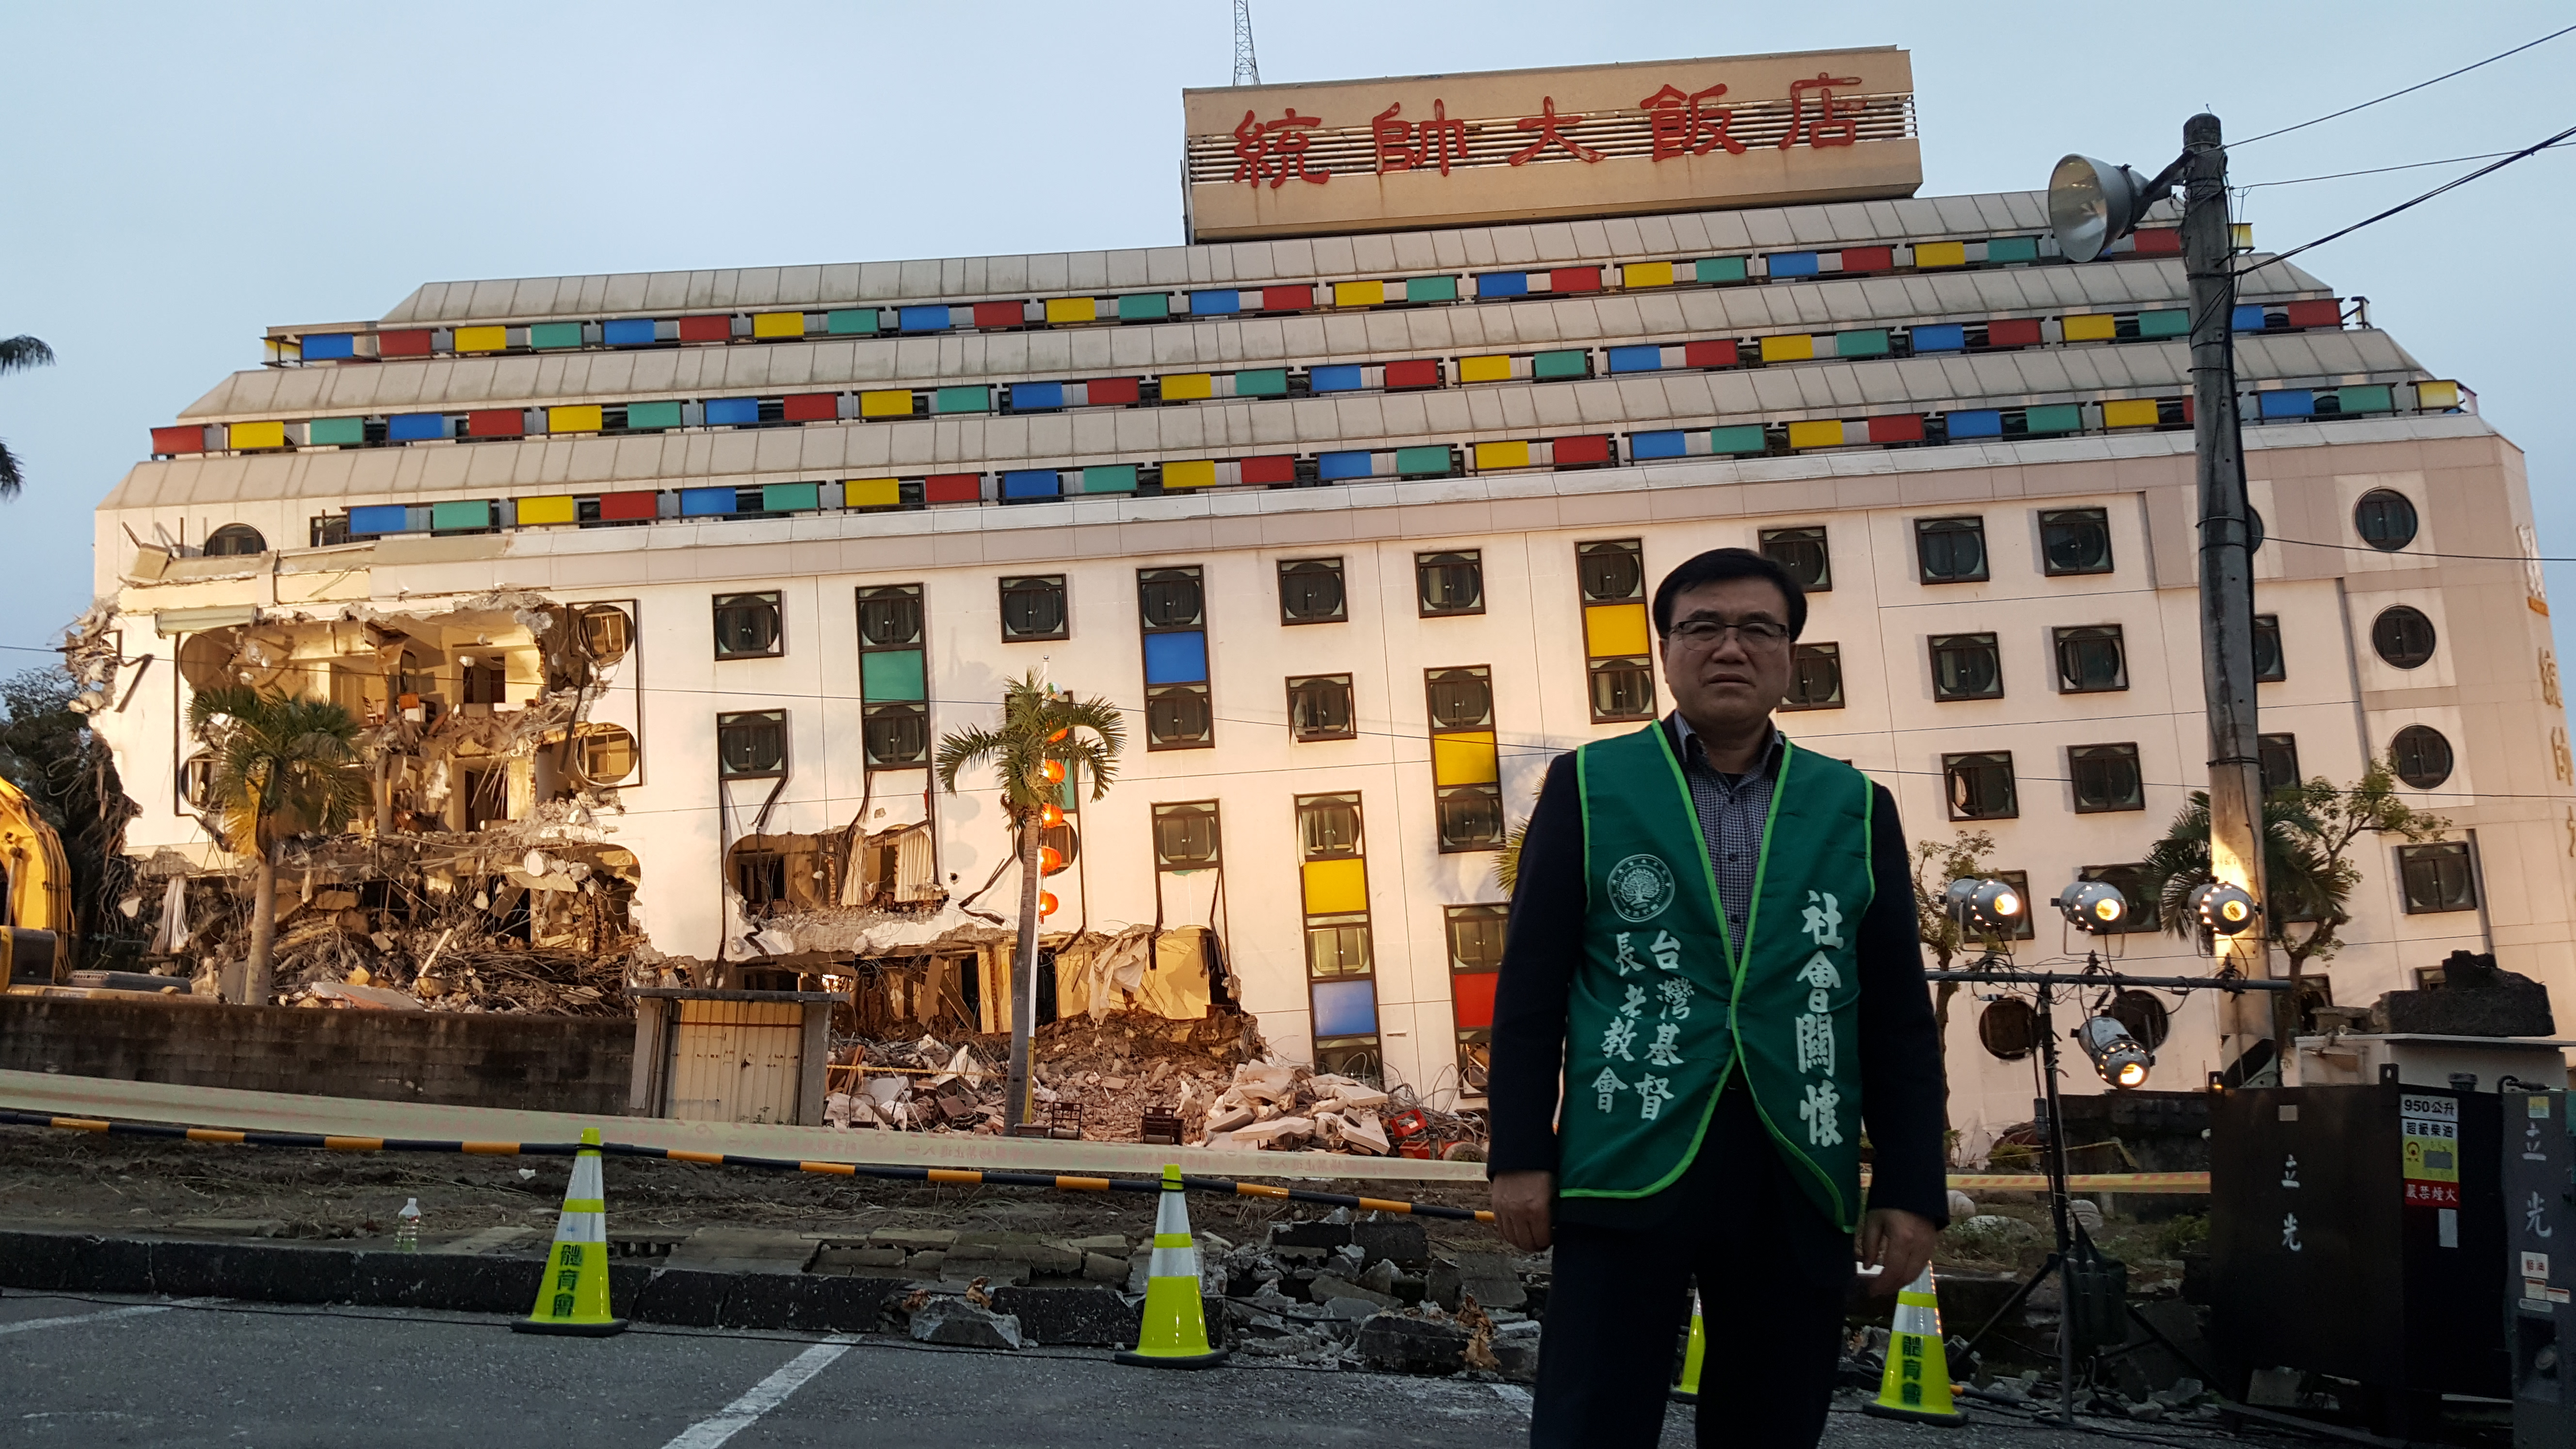 In front of the Marshal Hotel (we see only 6 floors of the 10-floor building).